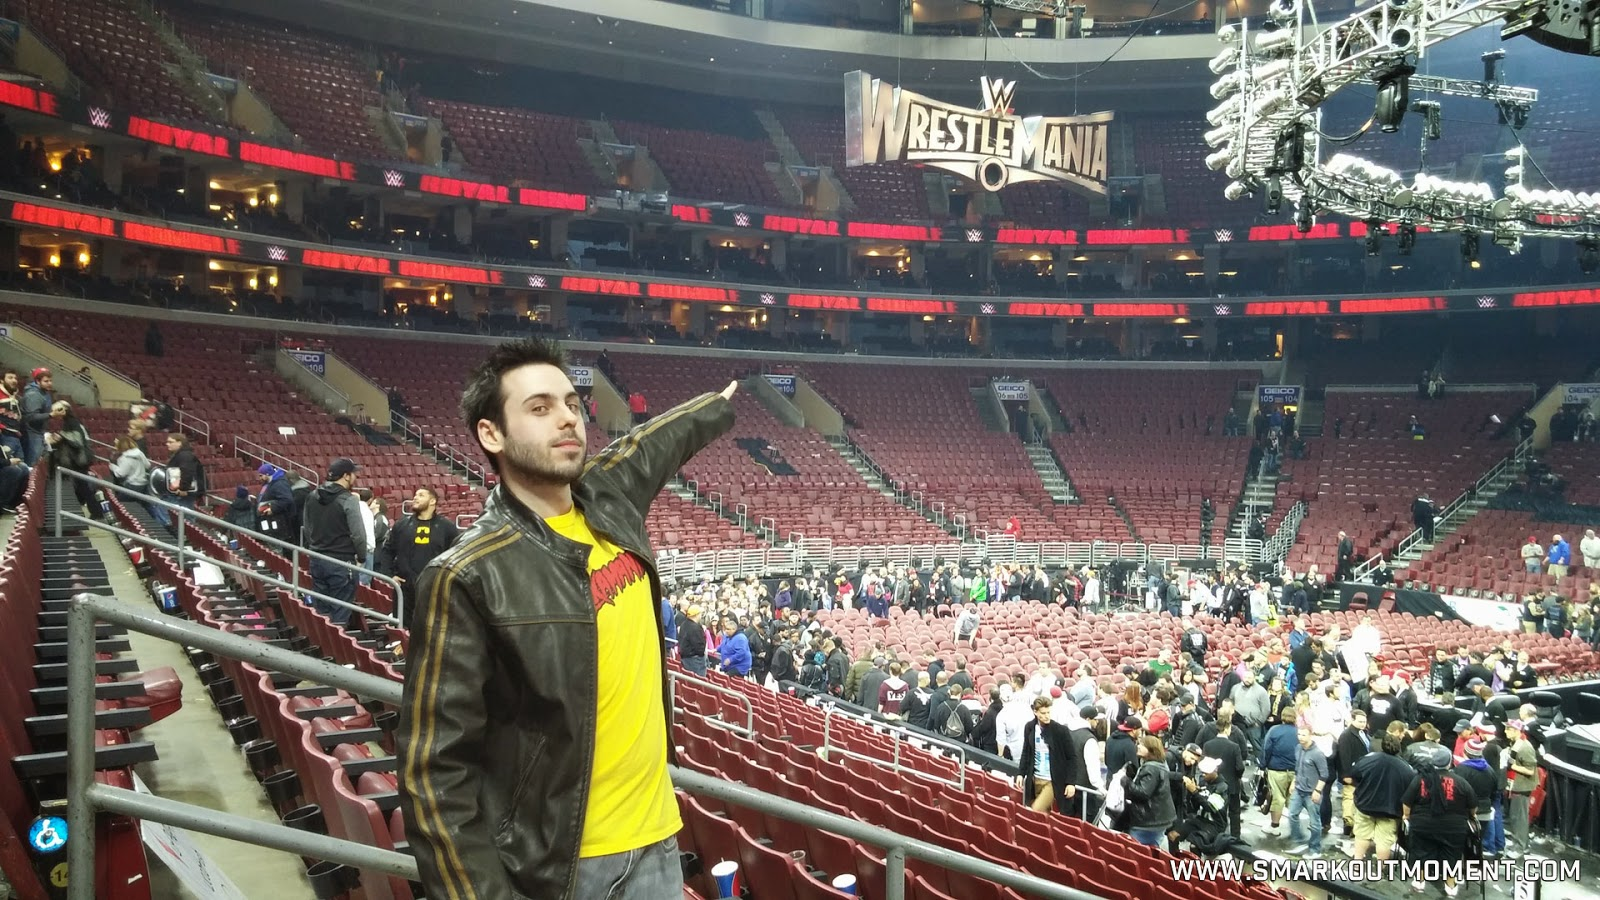 WWE Royal Rumble 2015 WrestleMania sign point